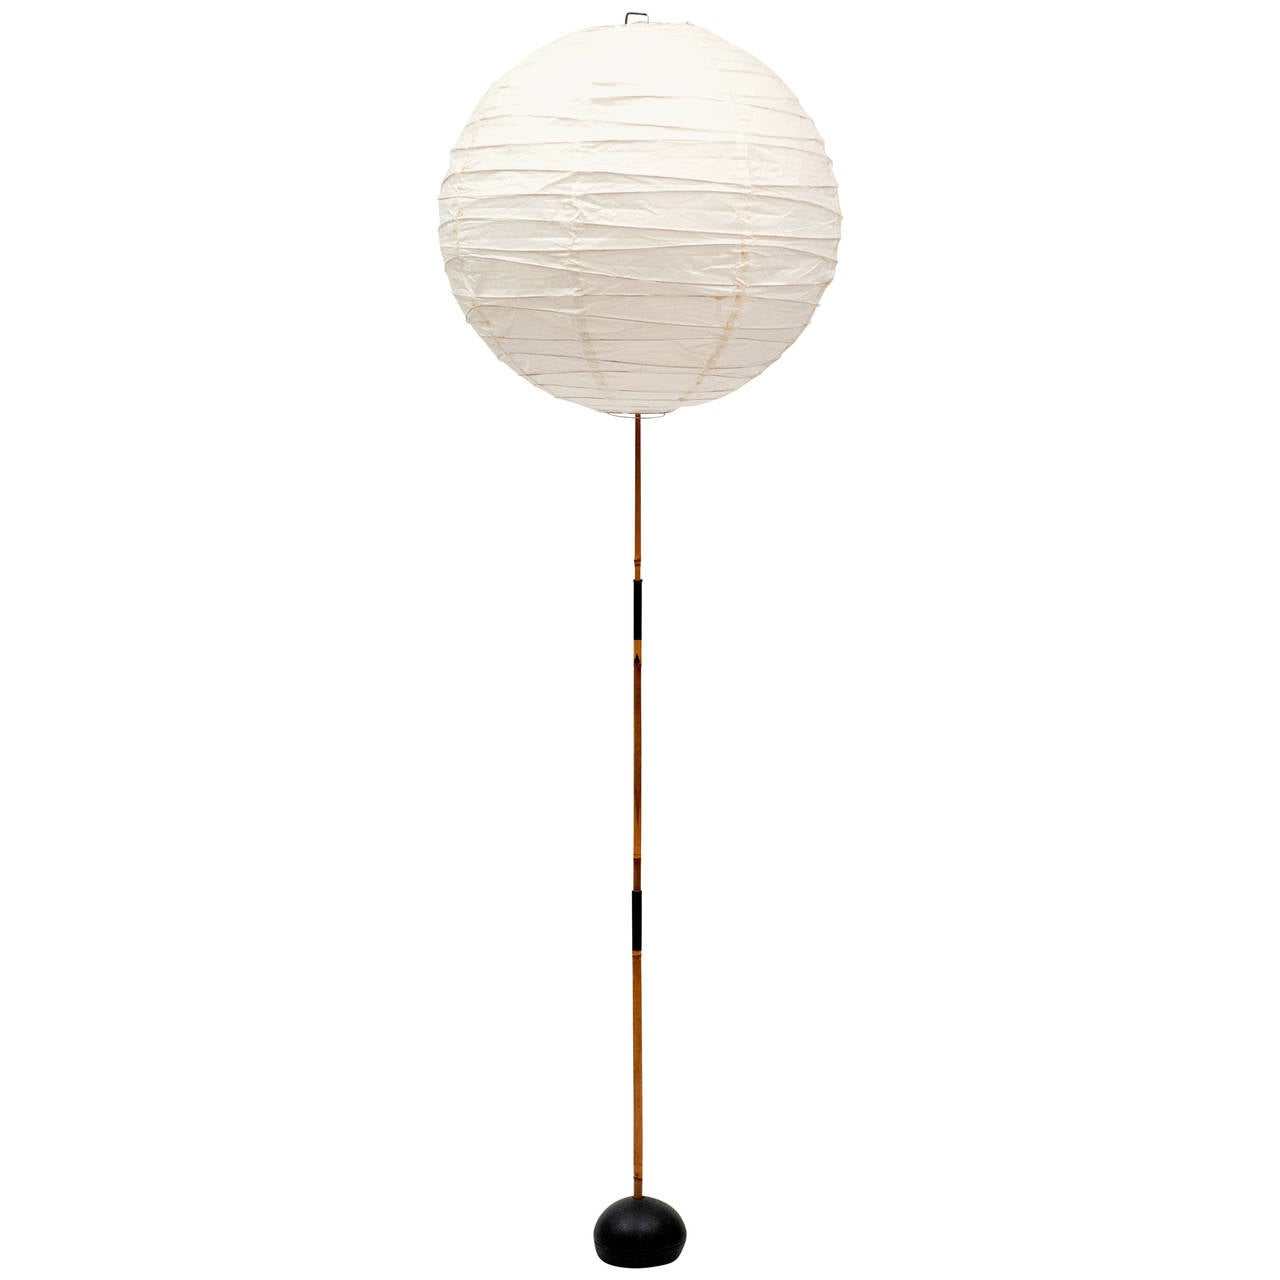 Isamu Noguchi Bamboo And Paper Lantern Floor Lamp 1950s For